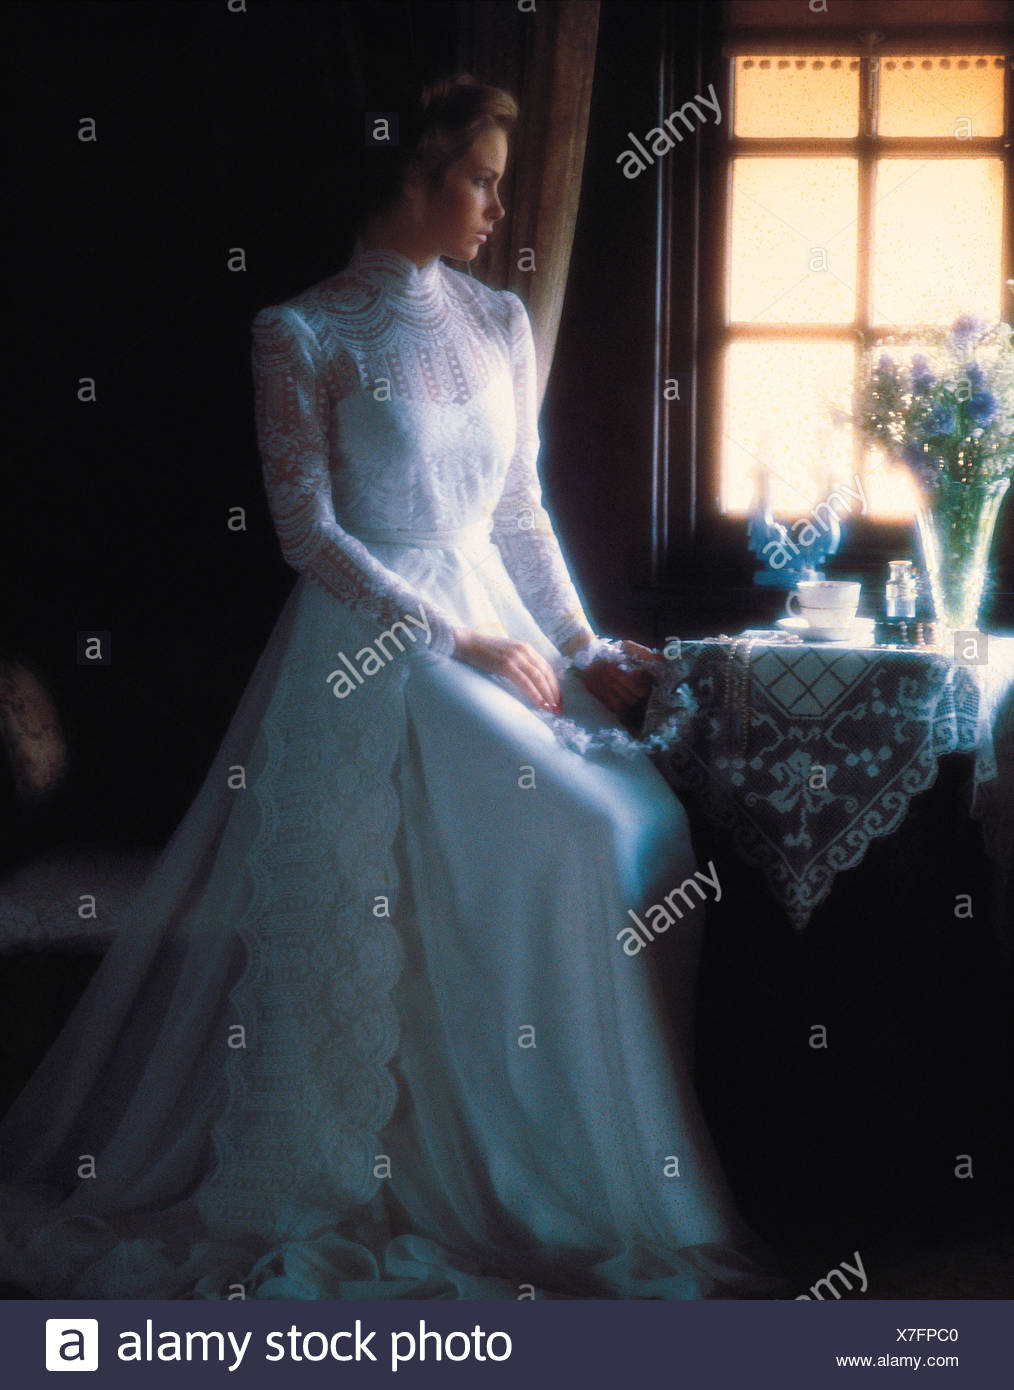 Young woman in long white bridal gown seated by window. Stock Photo